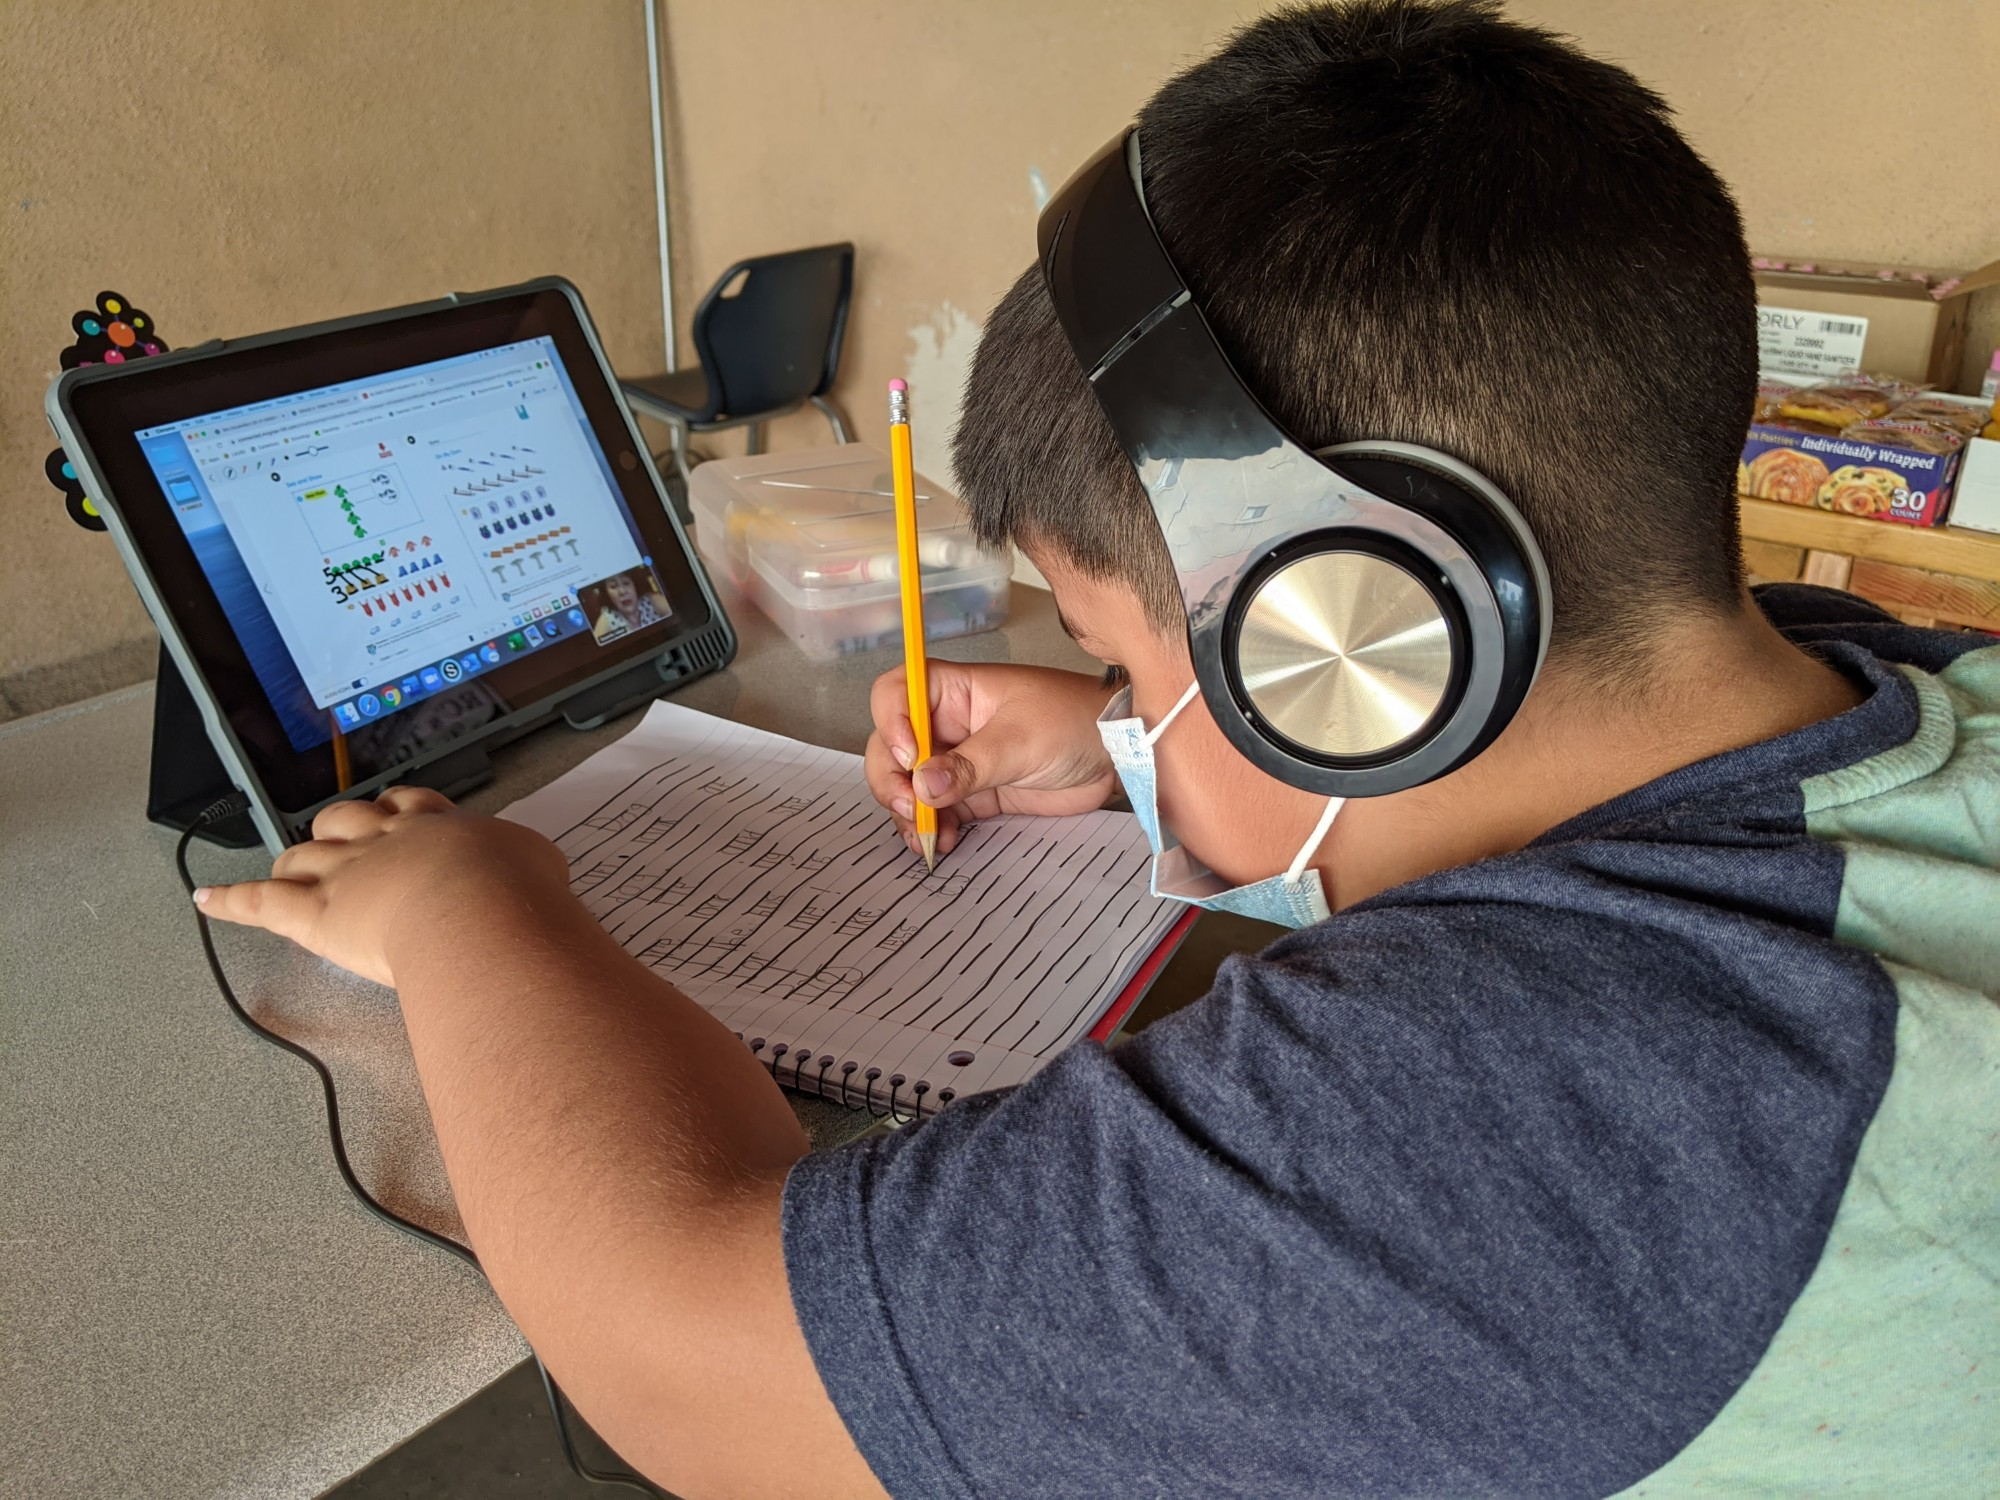 Young boy with school workbook and tablet computer